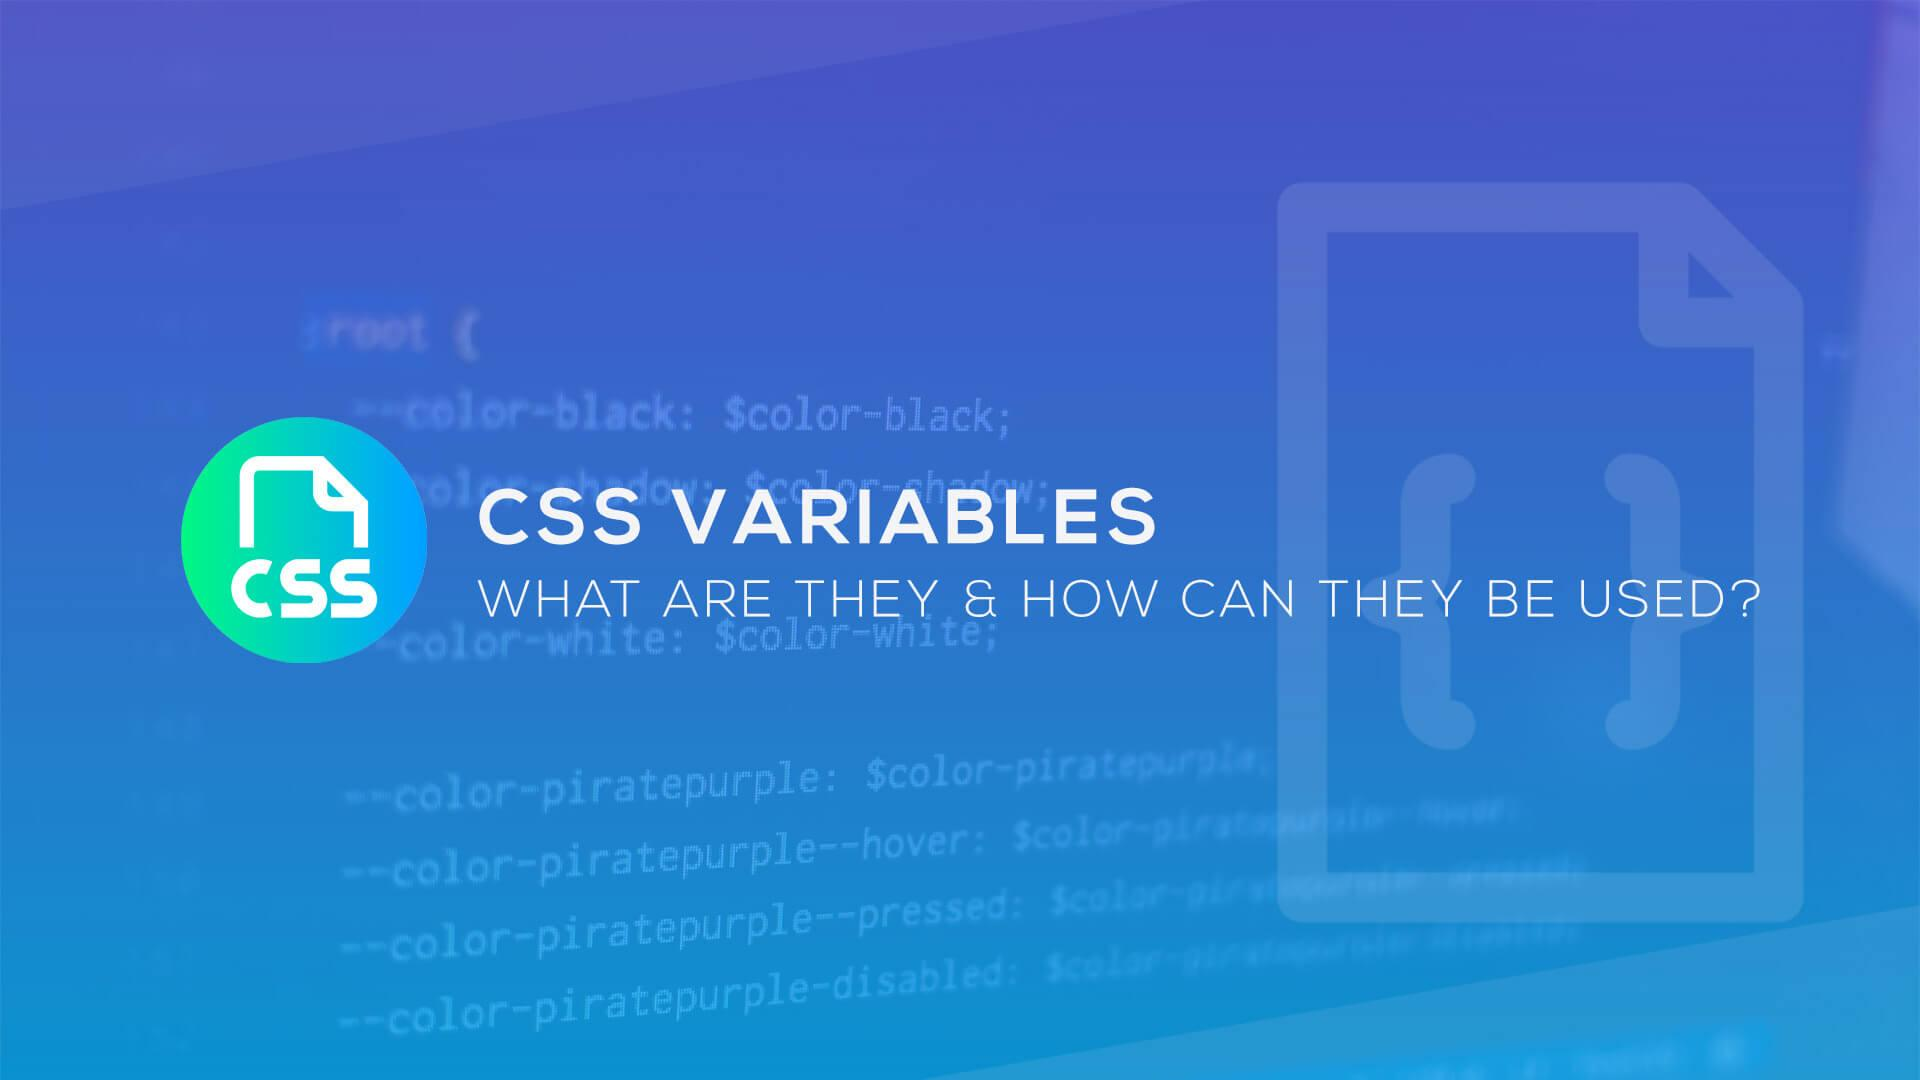 CSS Variables: What Are They & How Can They Be Used?